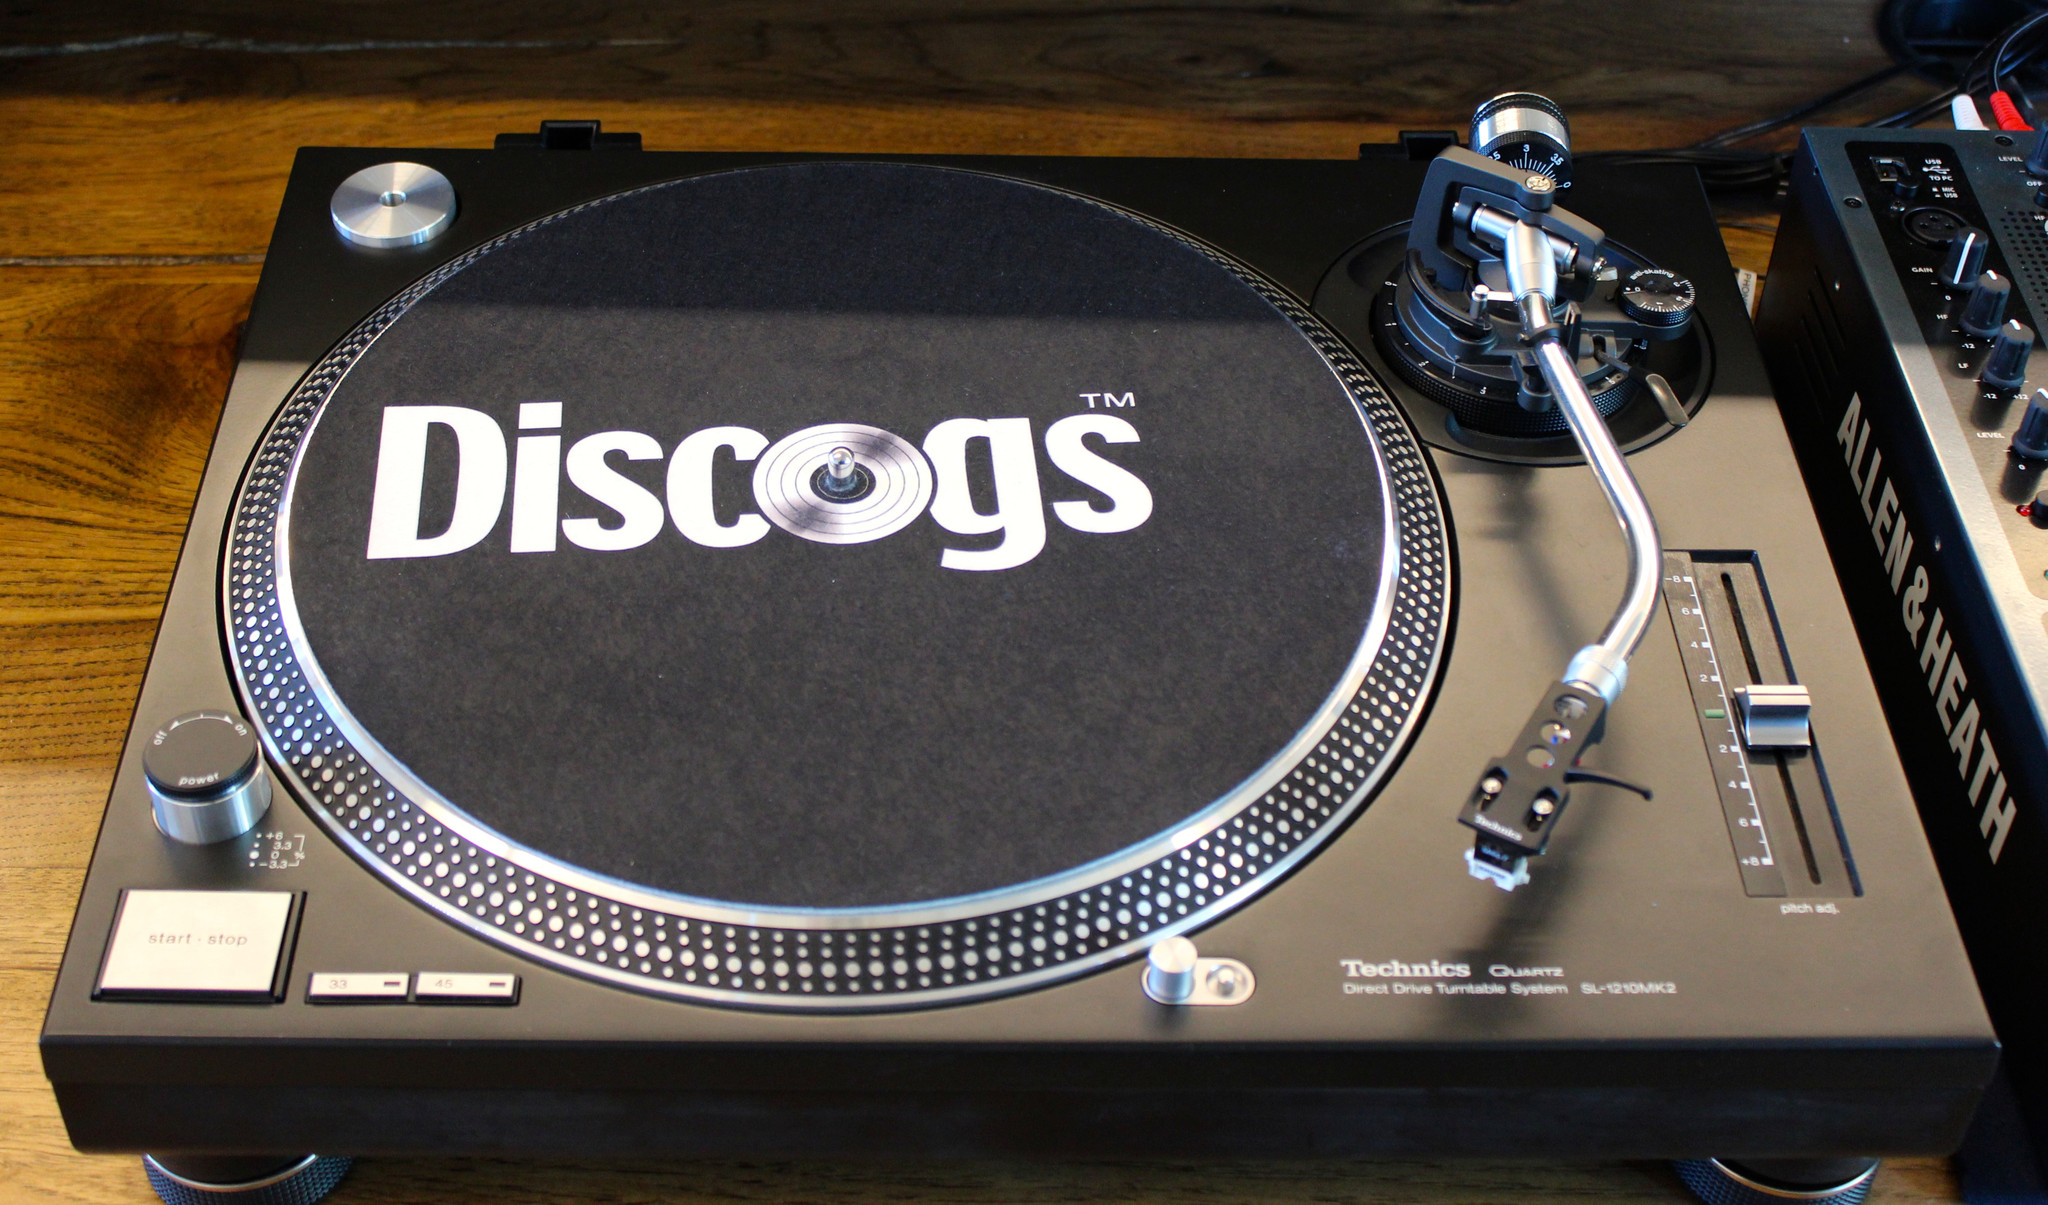 Discogs Clamps Down On Bootlegs | www.MediaServicesNYC.com